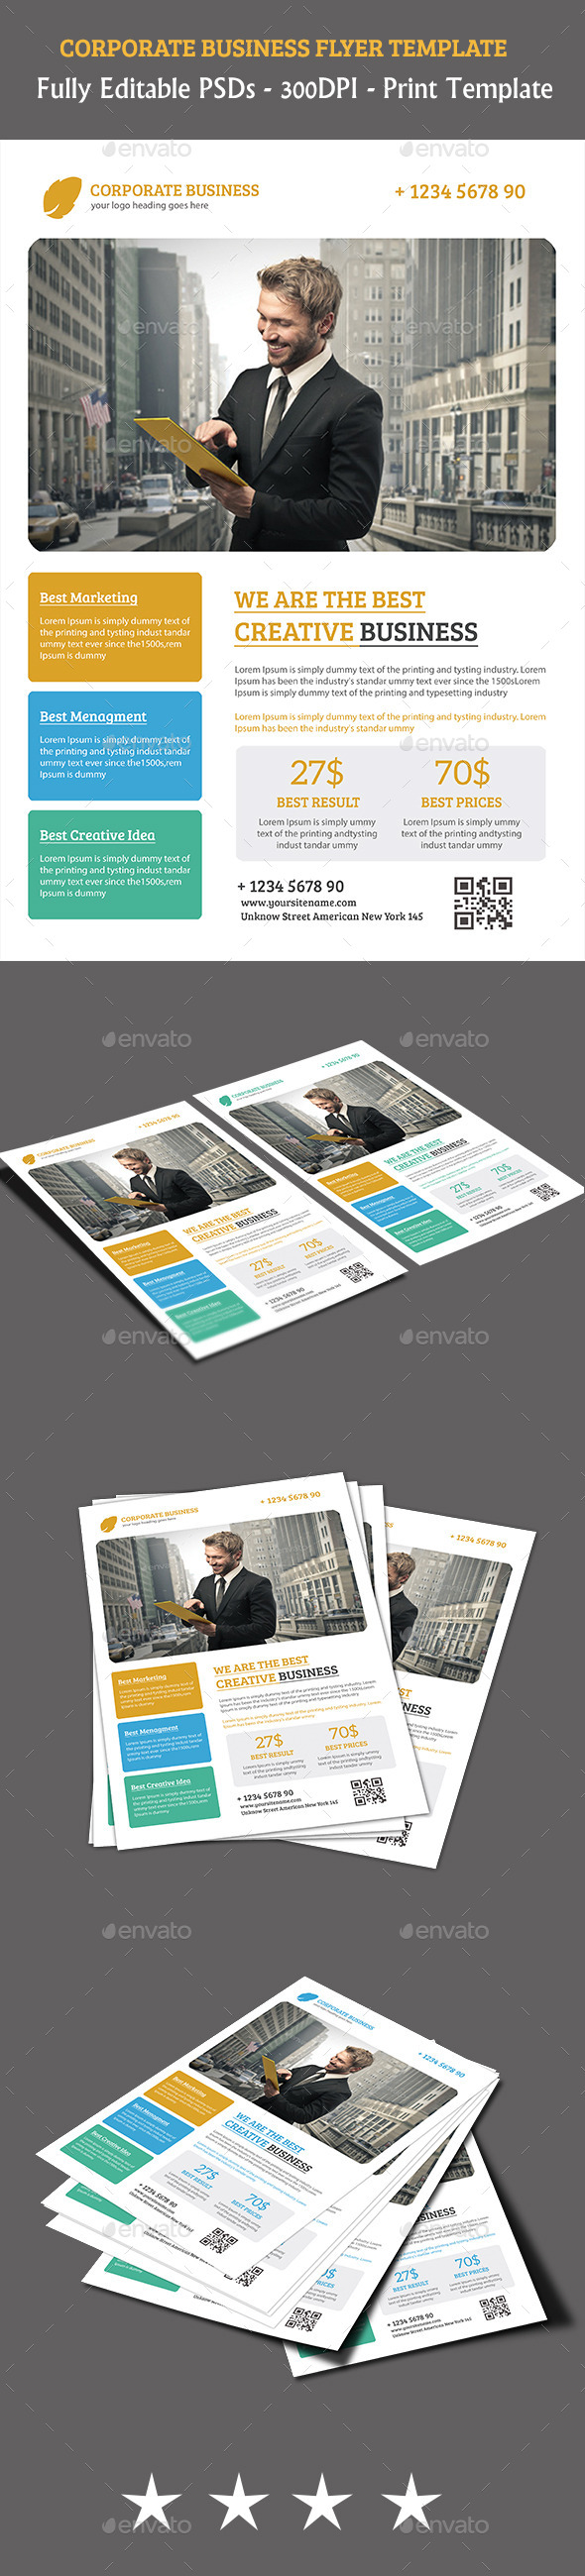 GraphicRiver Corporate Business Flyer 11276224